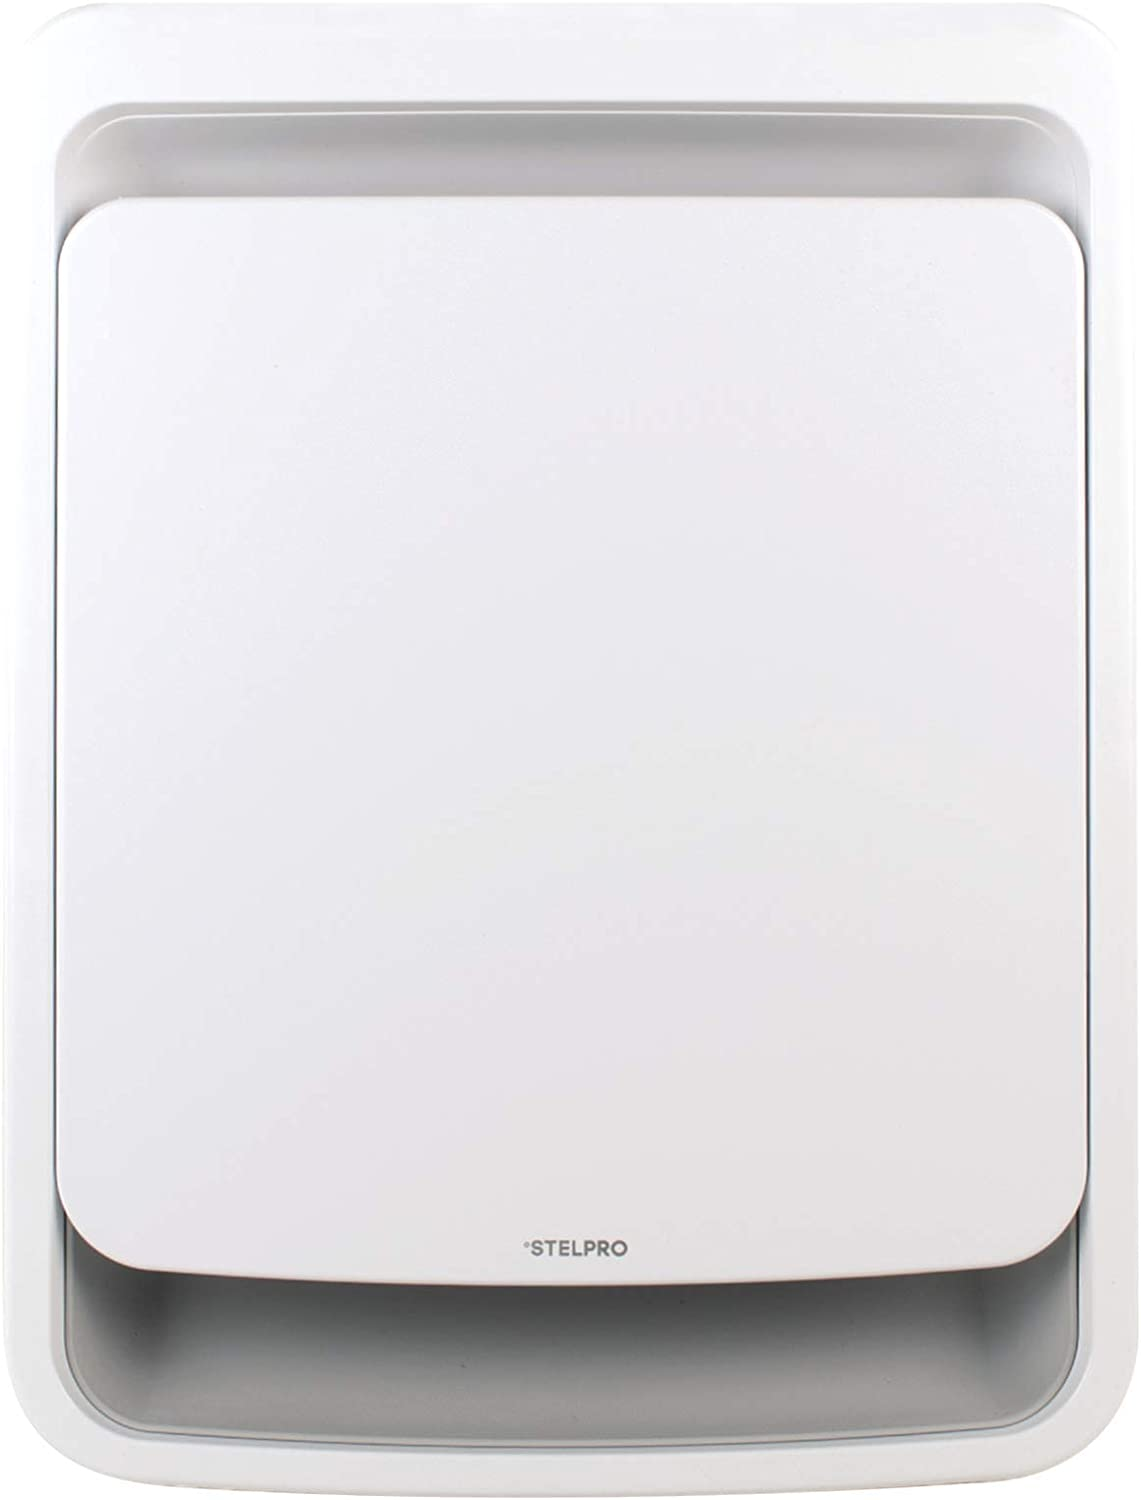 Stelpro ASOA2002WCW 2000 Watt 240 Volt White OASIS Bathroom Fan Heater Without Integrated Control